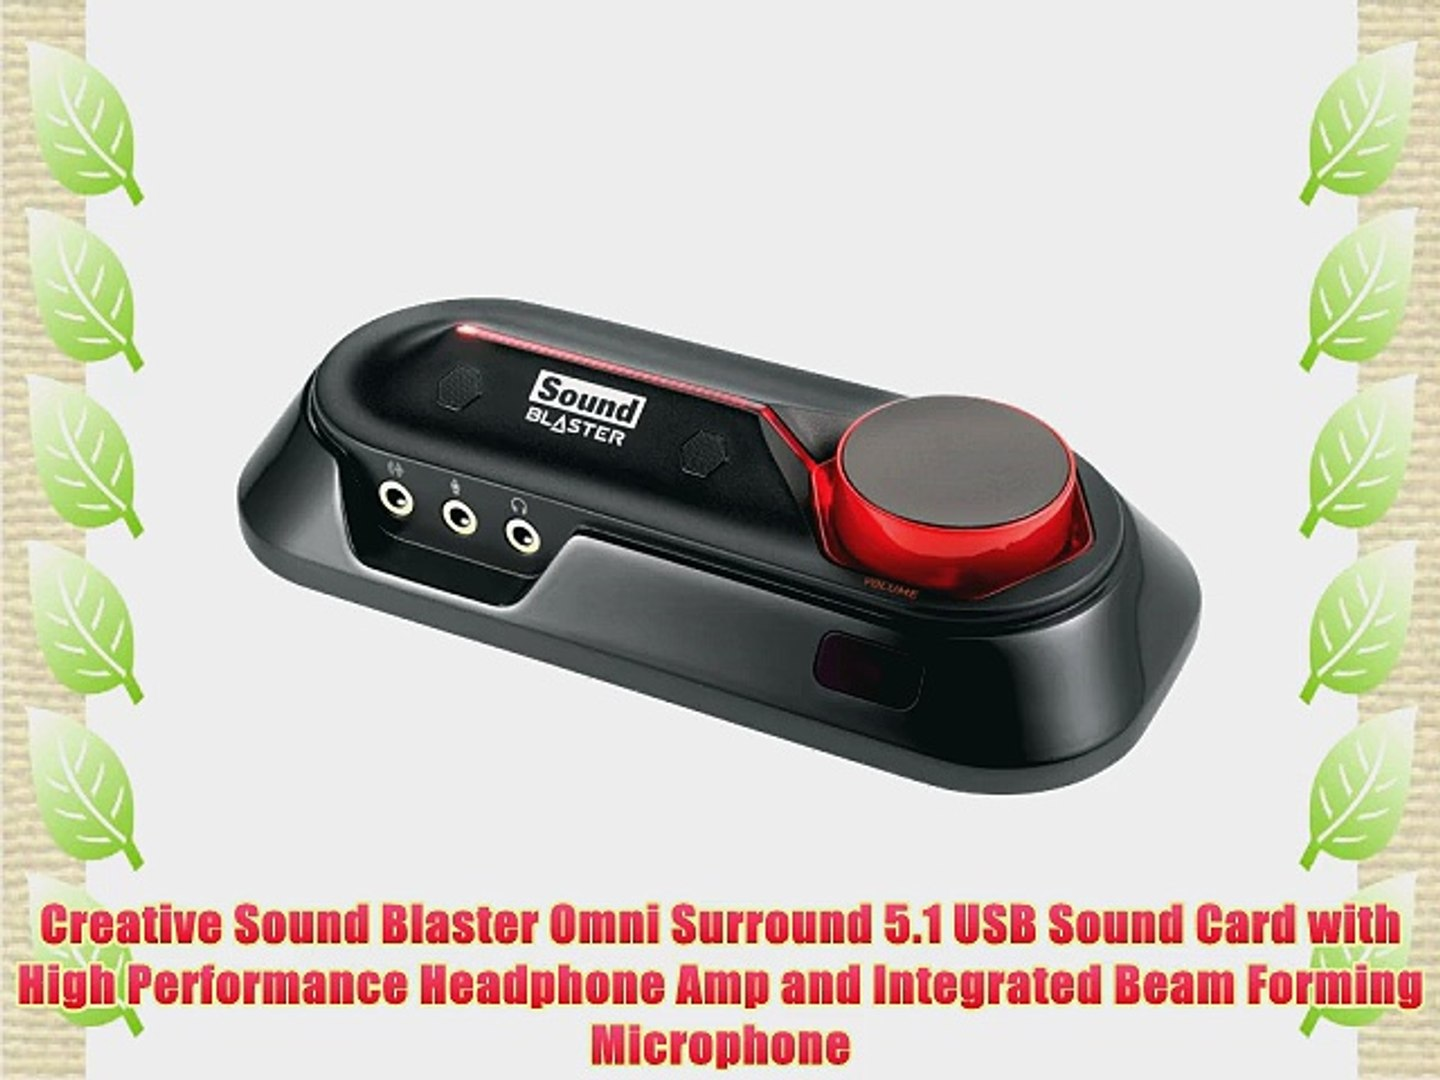 Creative Sound Blaster Omni Surround 5 1 USB Sound Card with High  Performance Headphone Amp